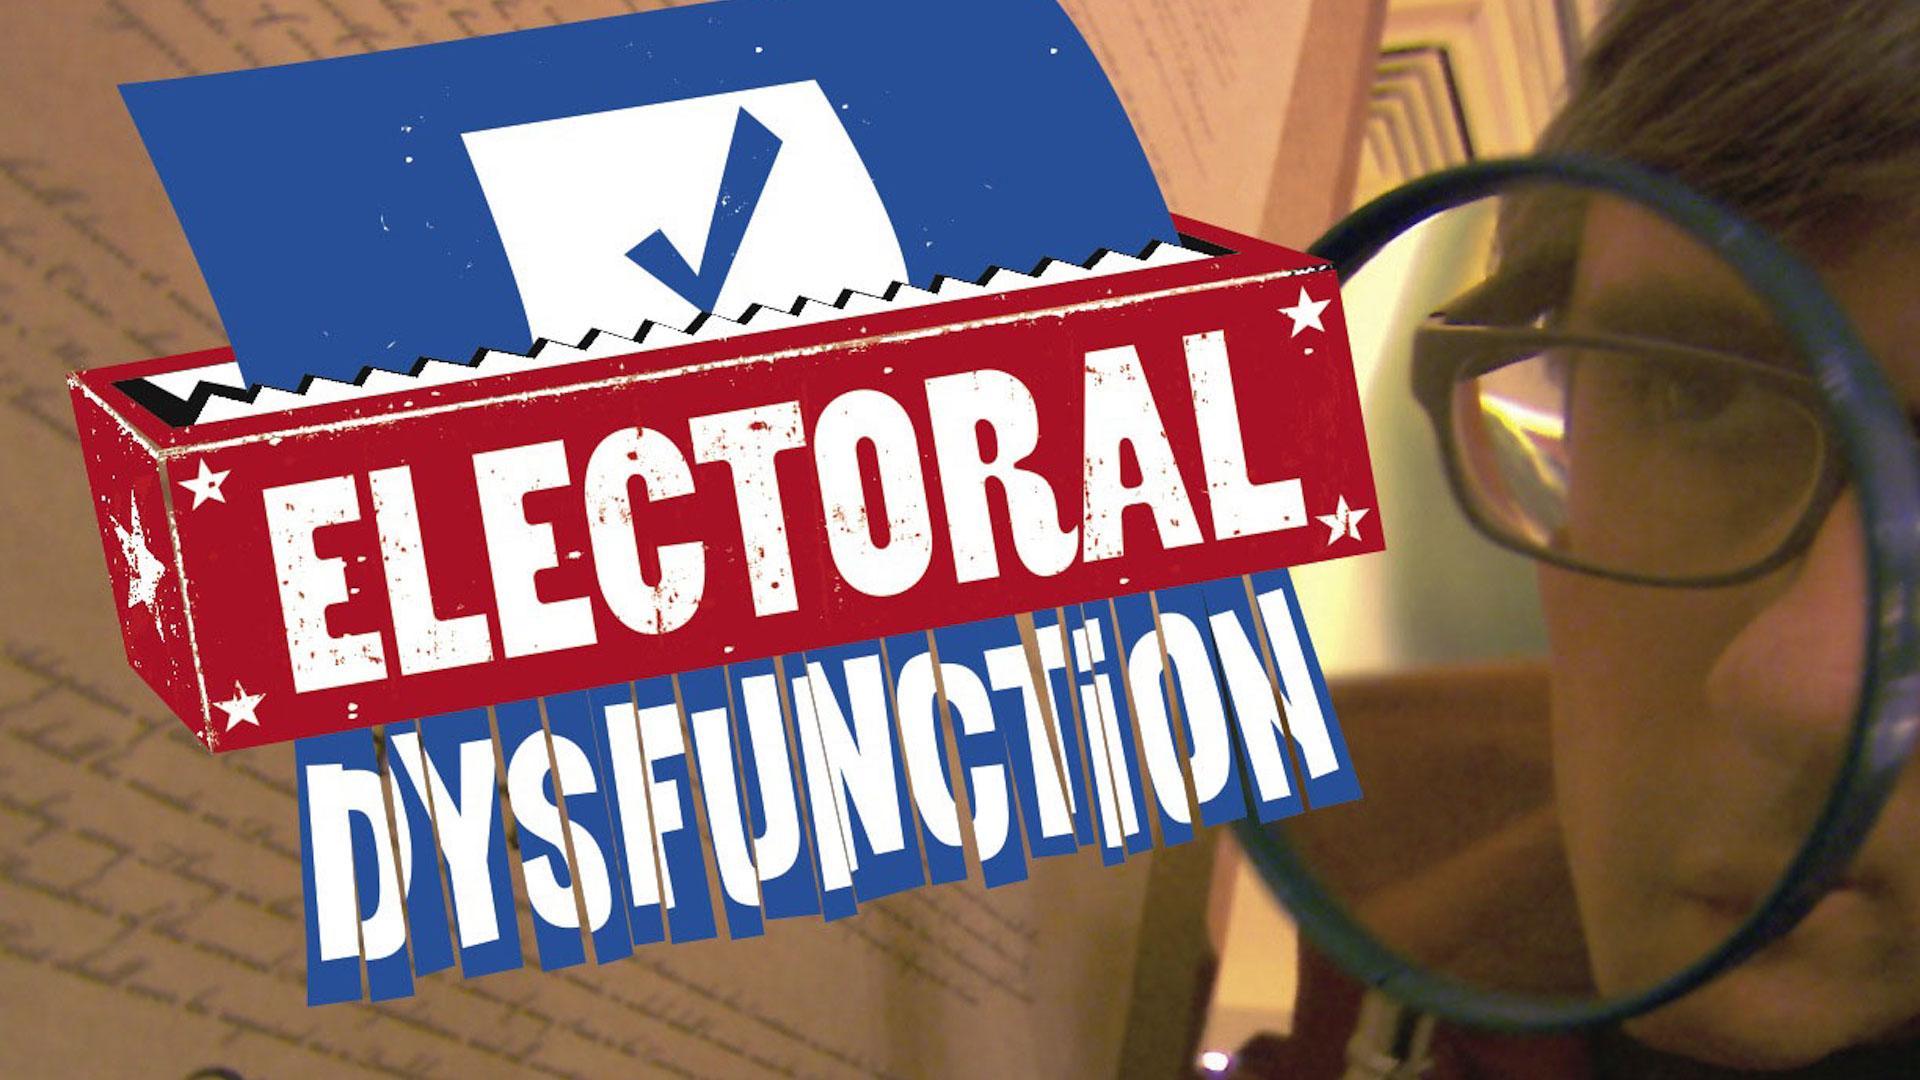 Electoral Dysfunction